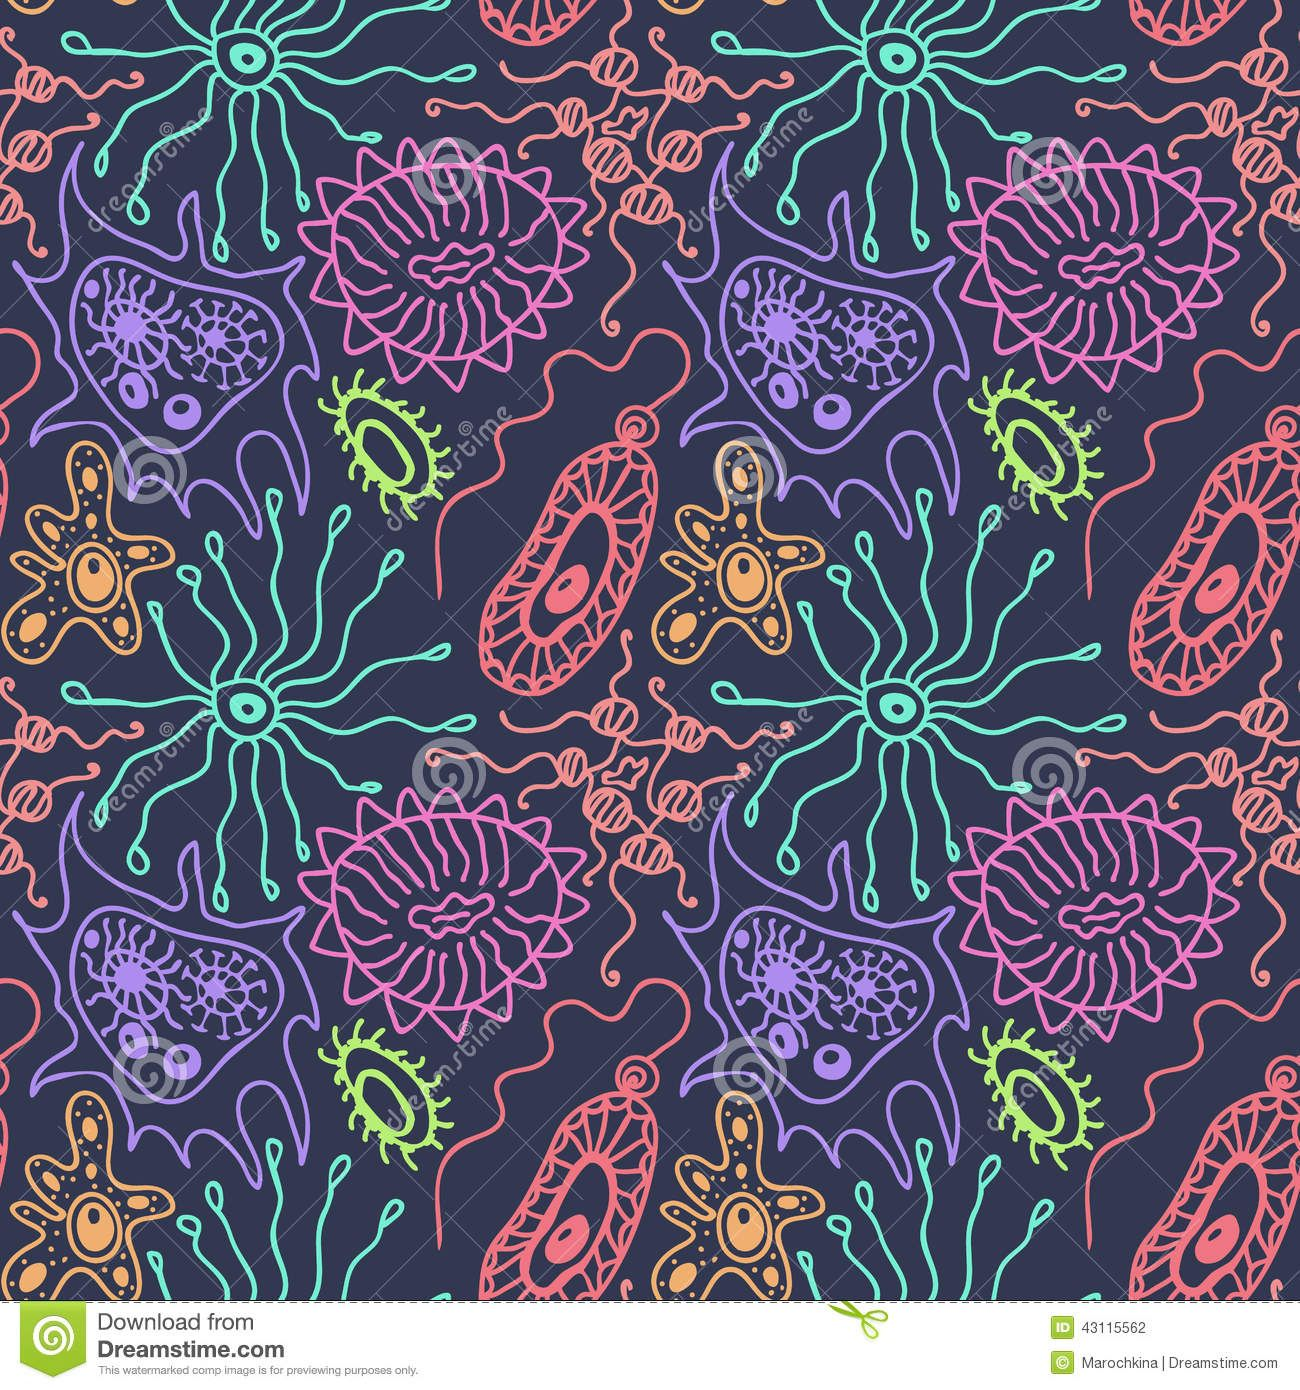 microbe pattern wallpaper - google search | illustrations